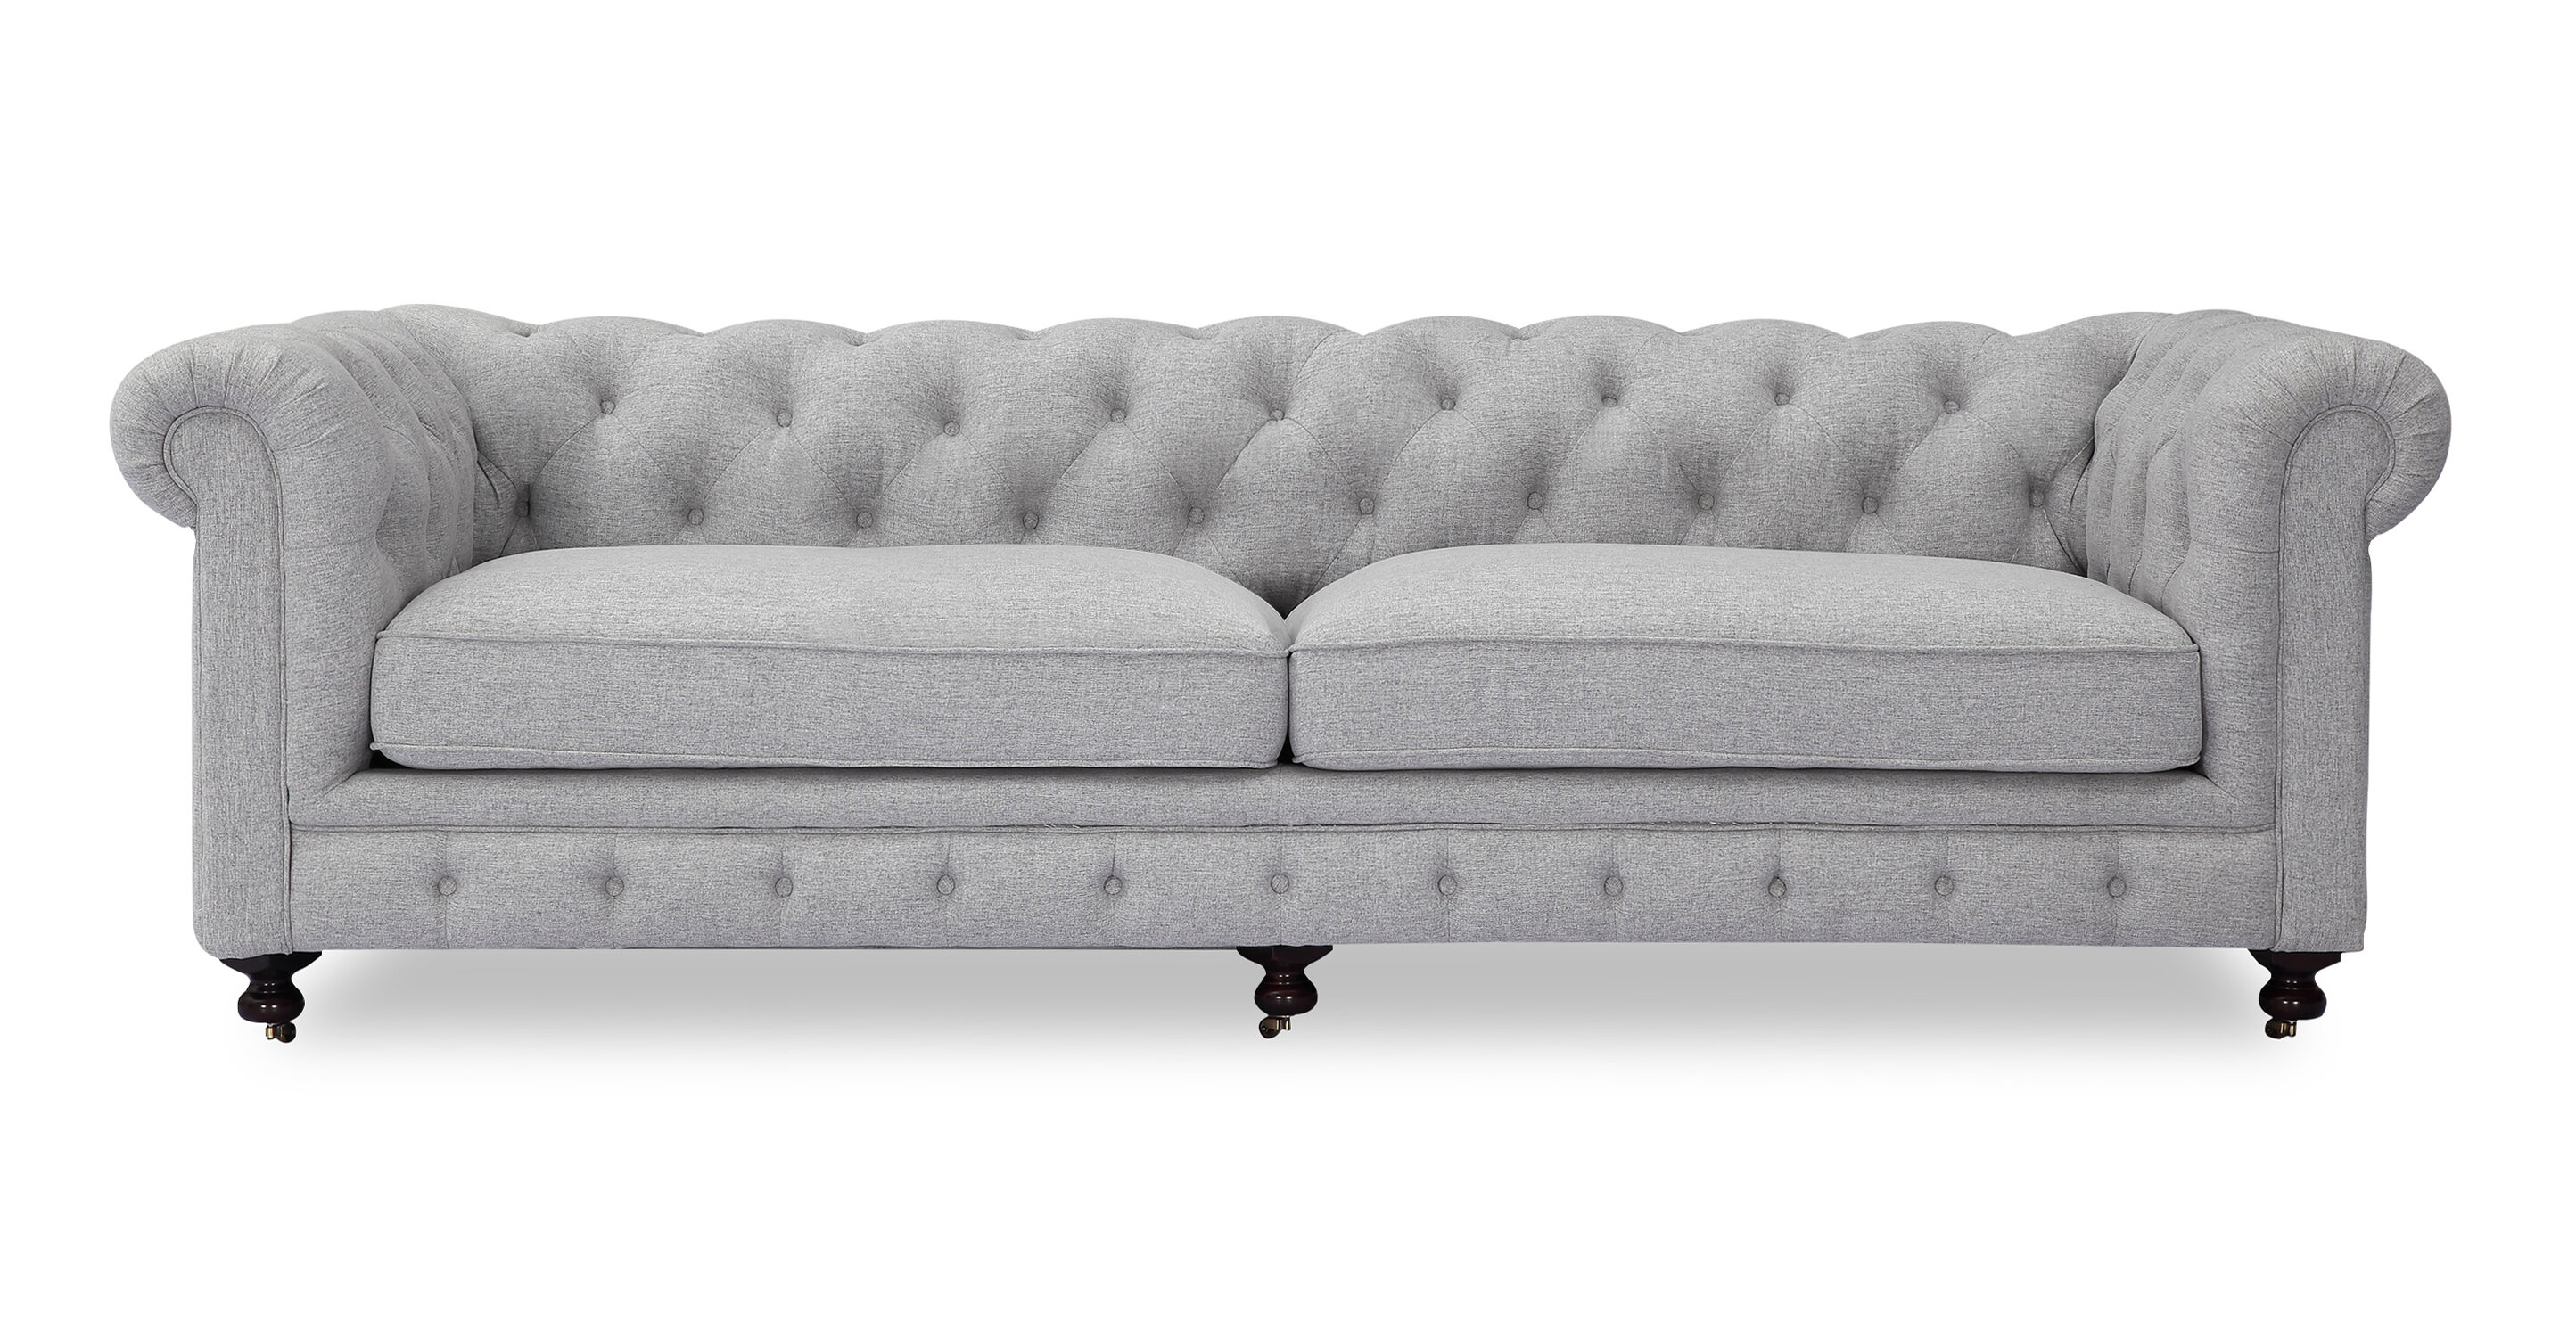 Kardiel Modern Classic Chesterfield Sofa Reviews Wayfair